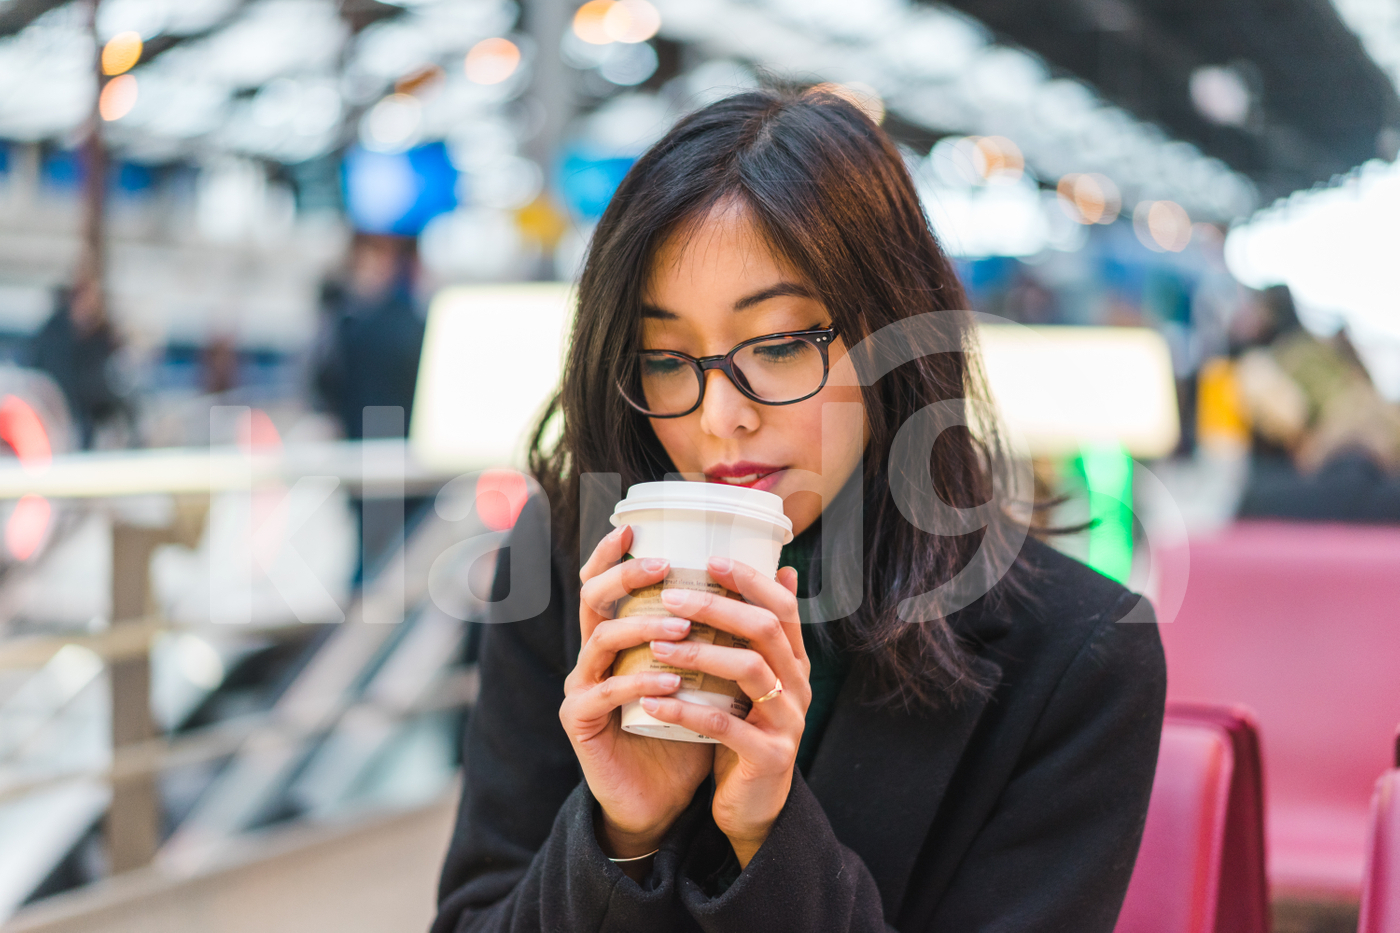 Young adult Asian woman drinking a coffee